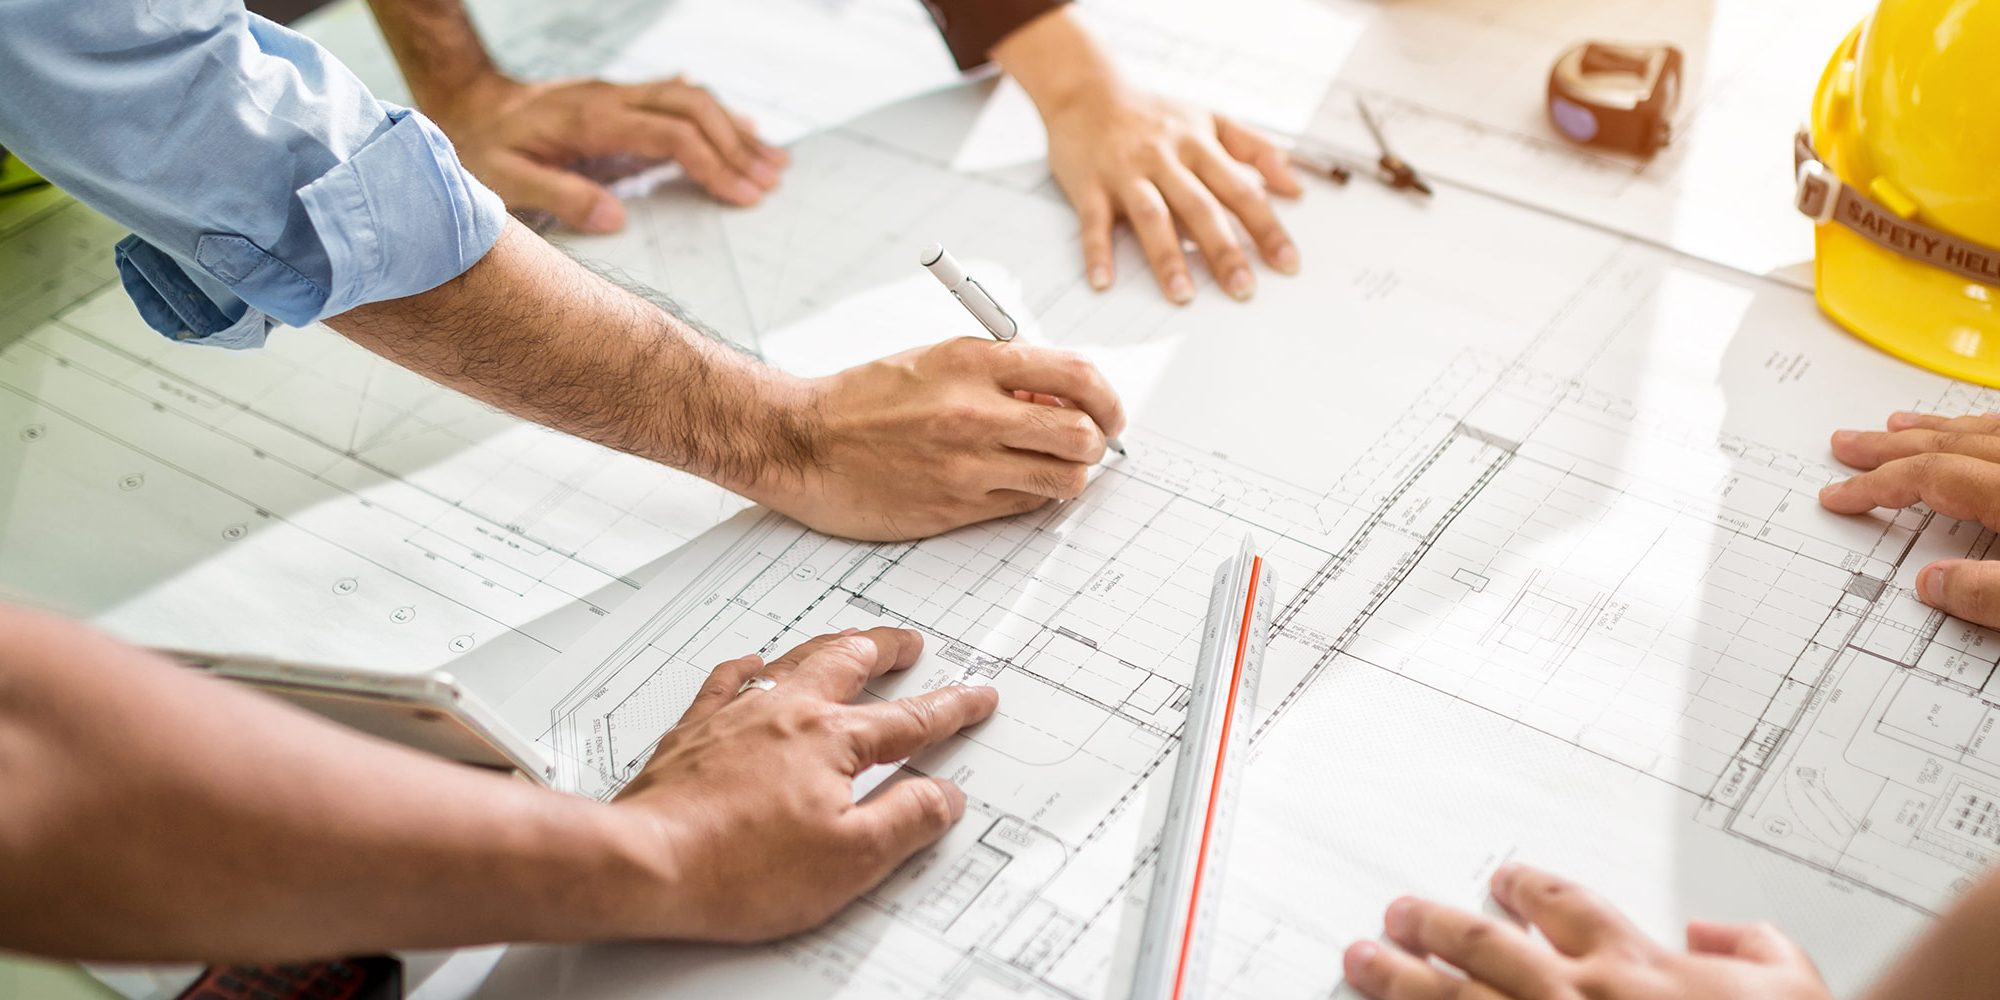 Team looking at drawings in preconstruction meeting